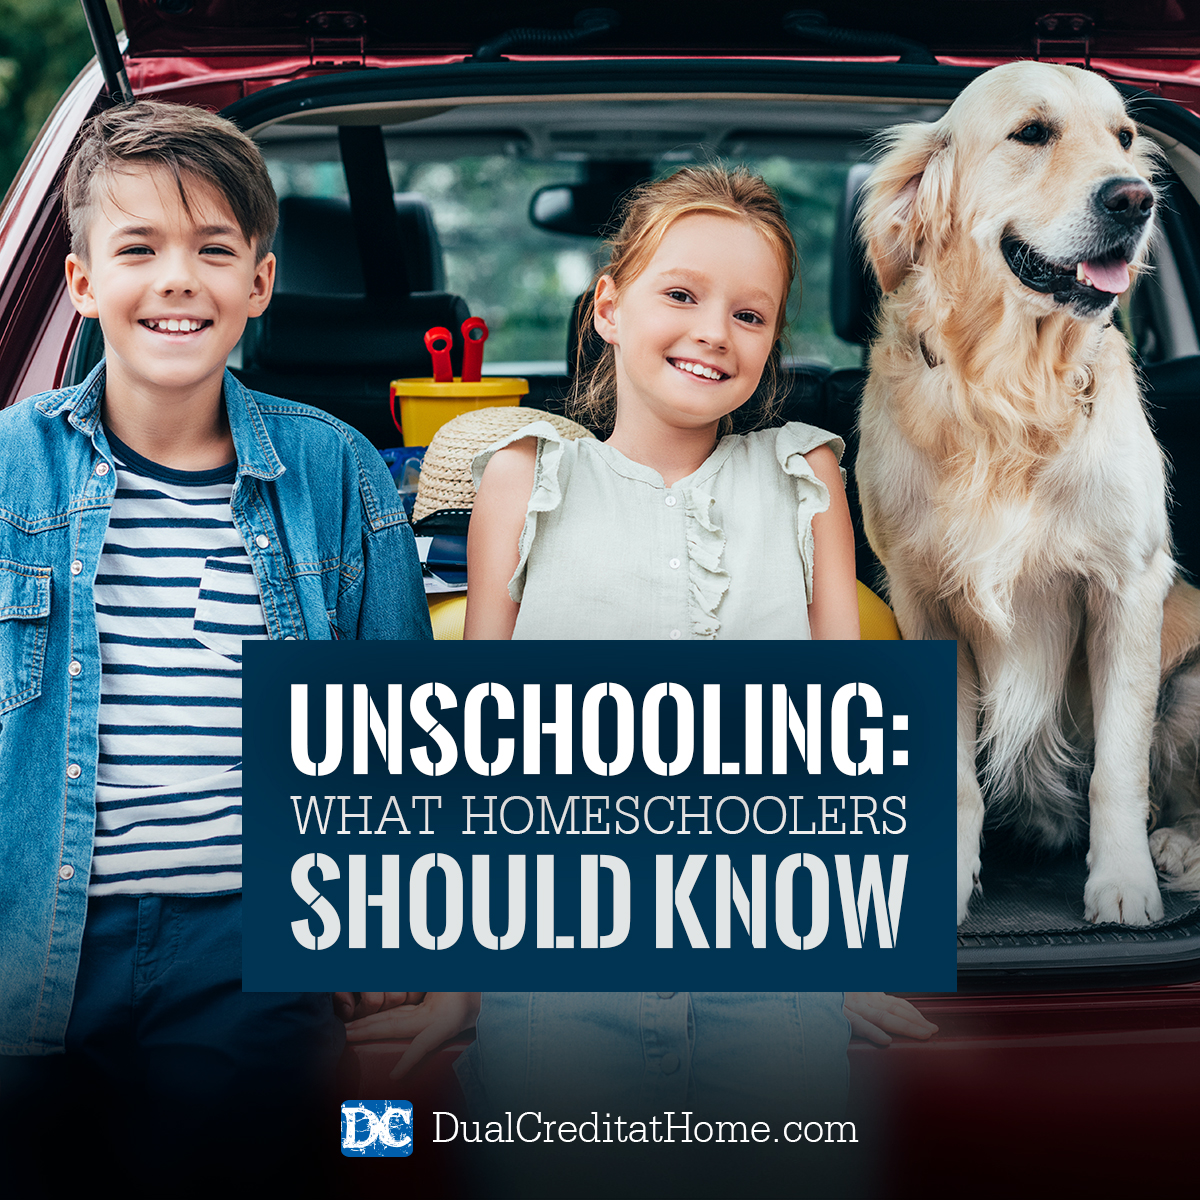 Unschooling: What Homeschoolers Should Know